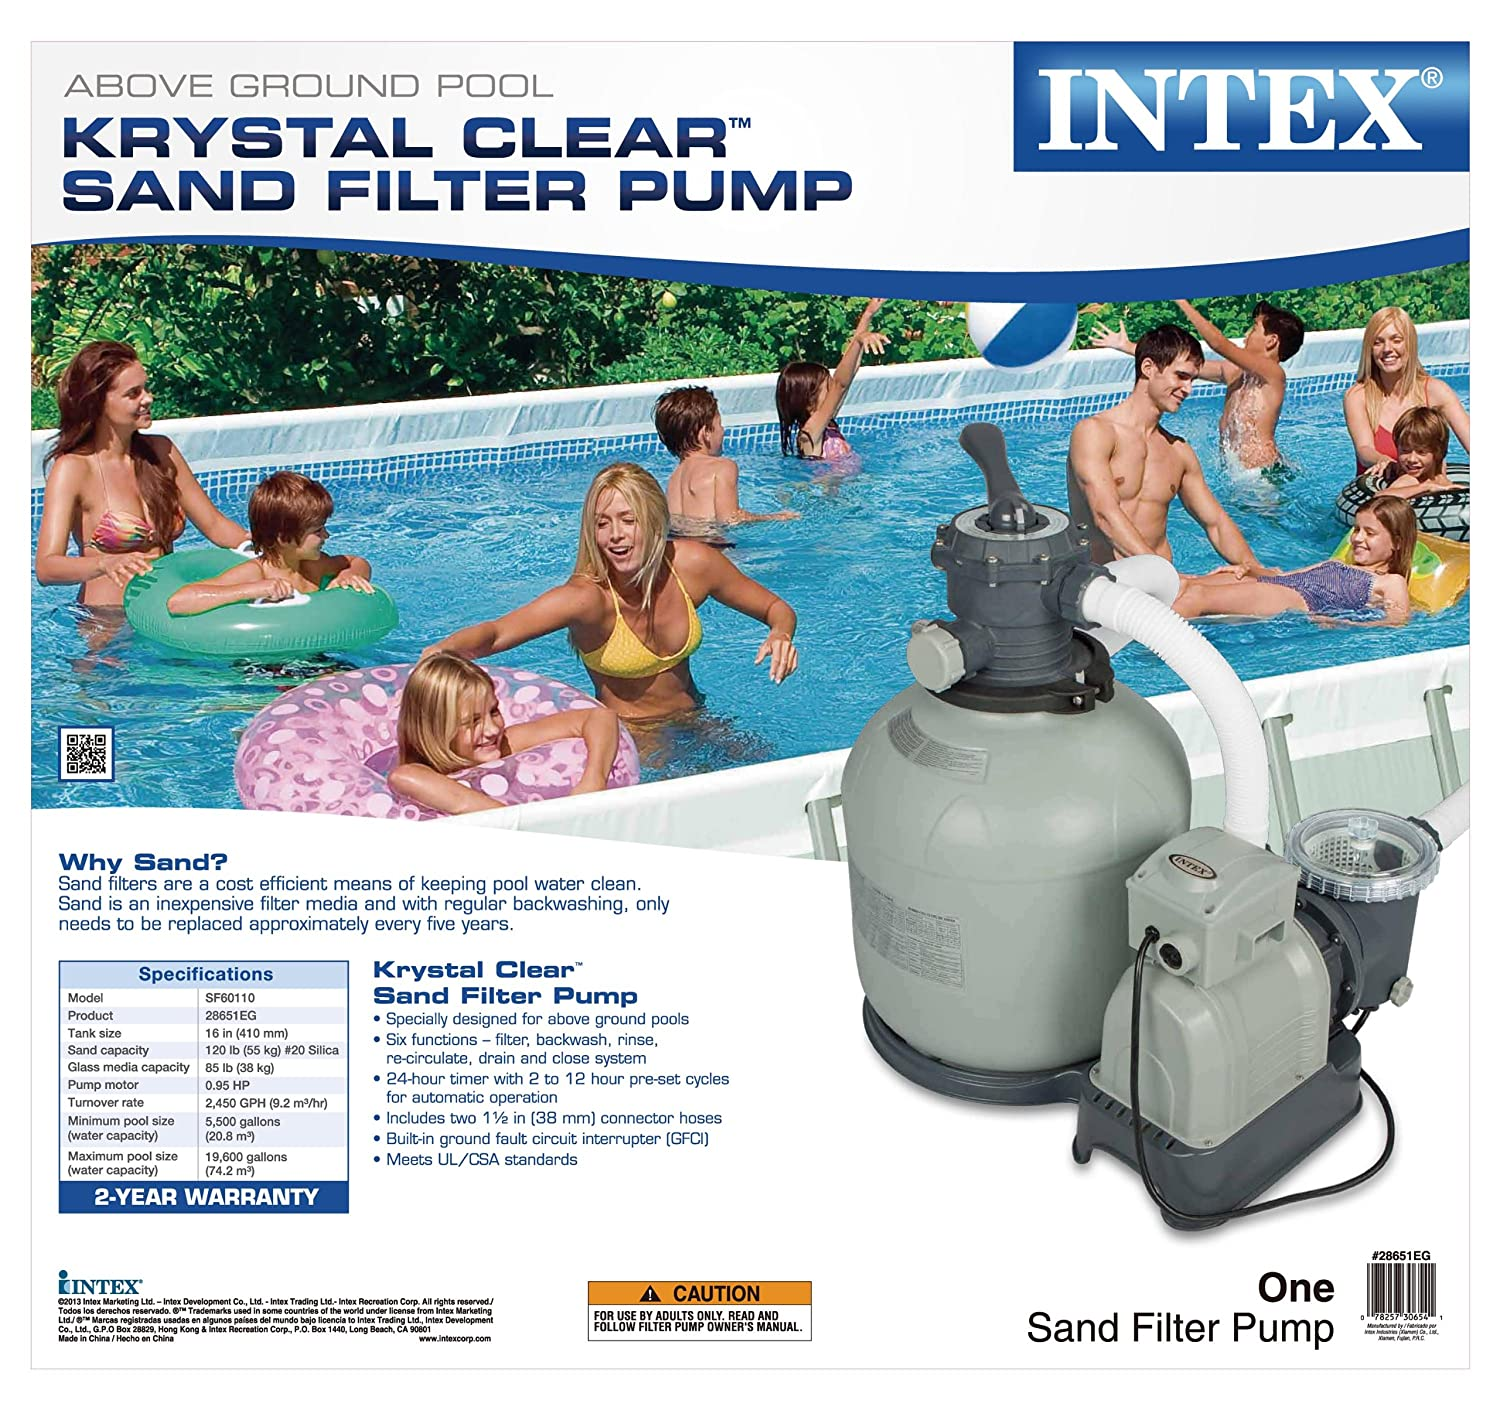 Top 4 best intex pool pumps 2017 buying guide for Above ground pool buying guide